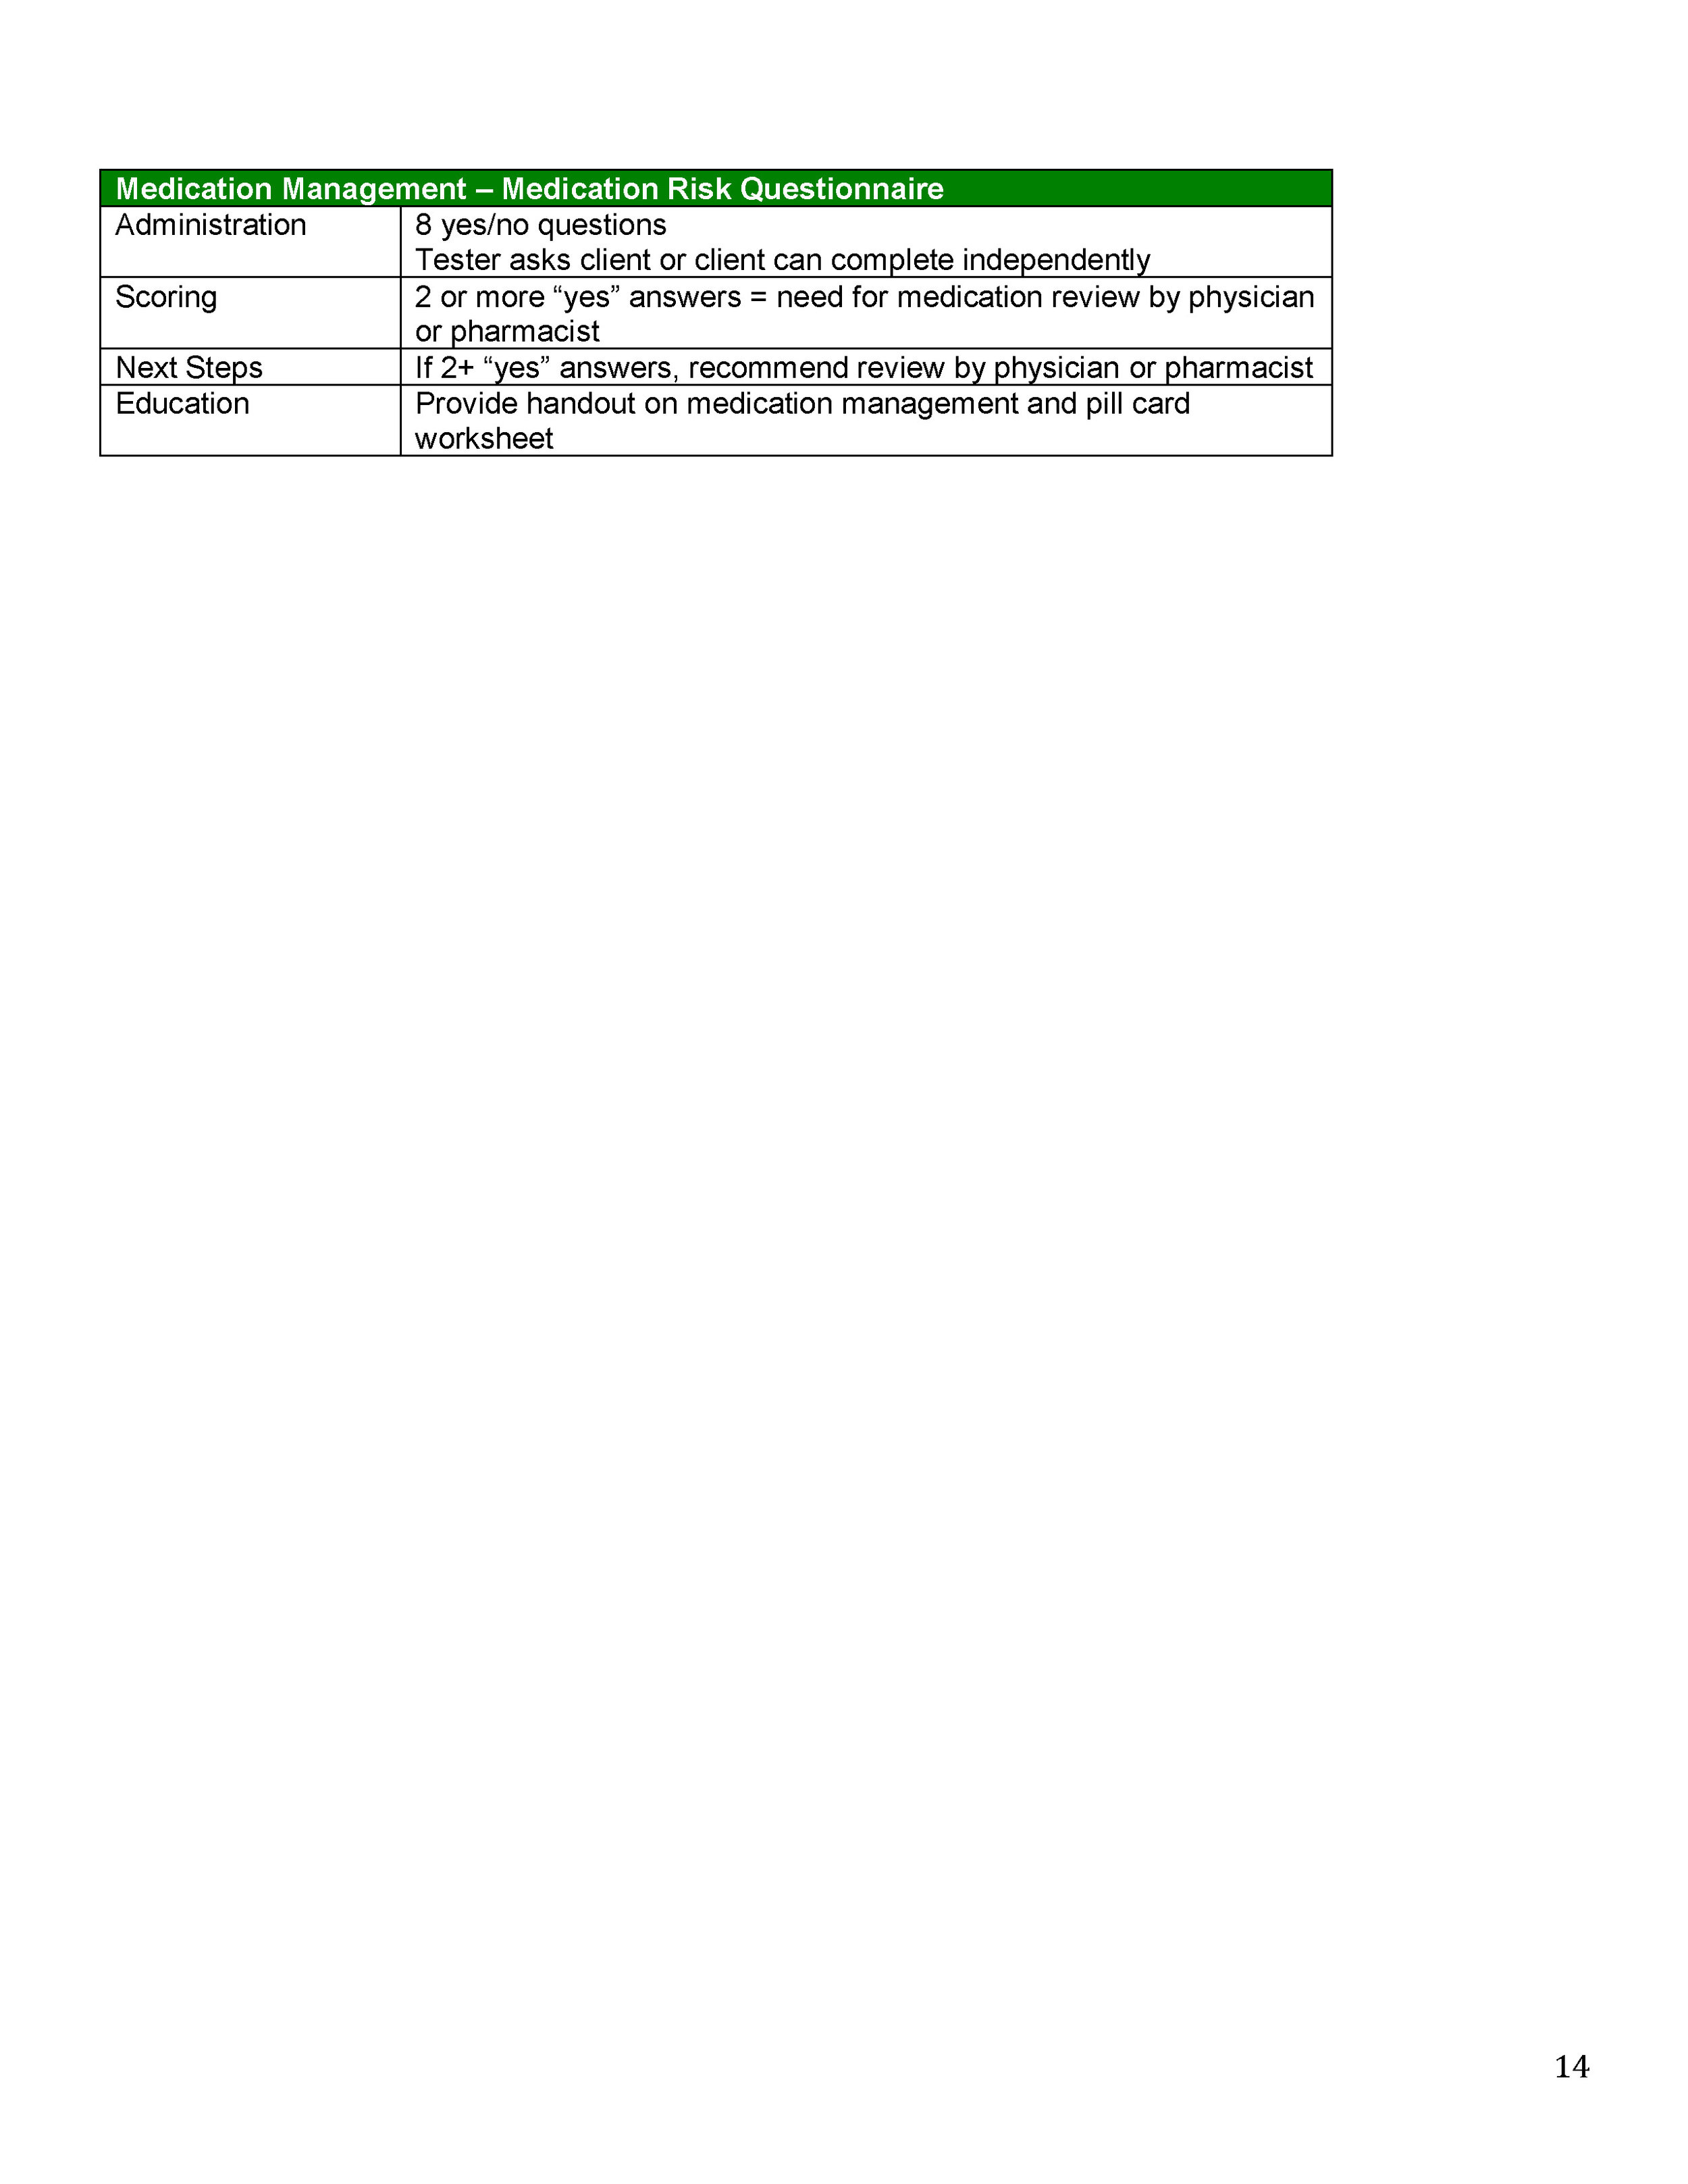 Aging Initiative_Assessment Outline_Sept2015_Page_14.jpg